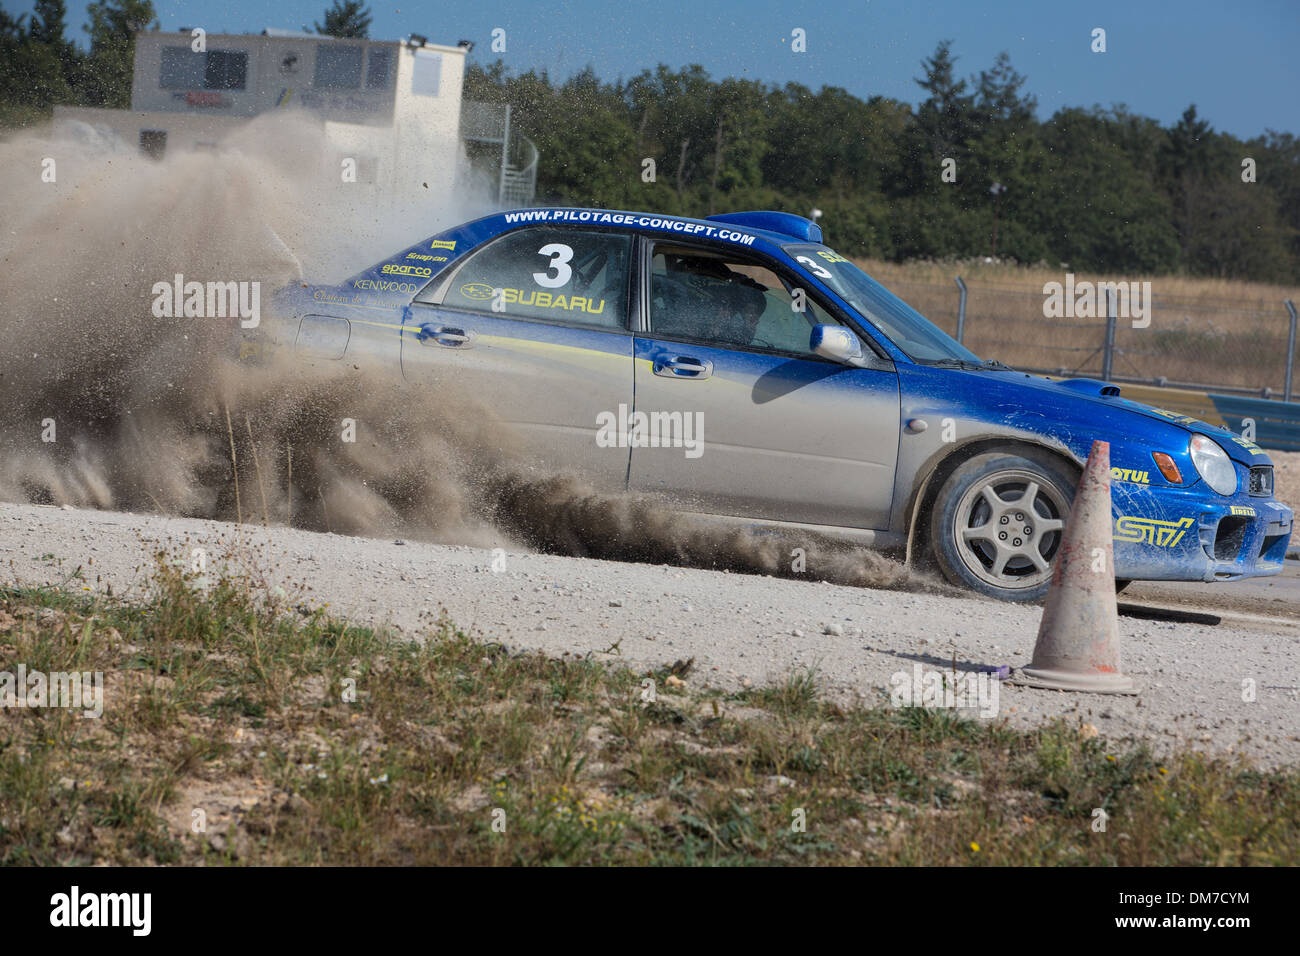 CAR BRAKING ON A GRAVEL TRACK, PRO'PULSION, DRIVING COURSES ON A RACE TRACK, DREUX, EURE-ET-LOIR (28), FRANCE - Stock Image